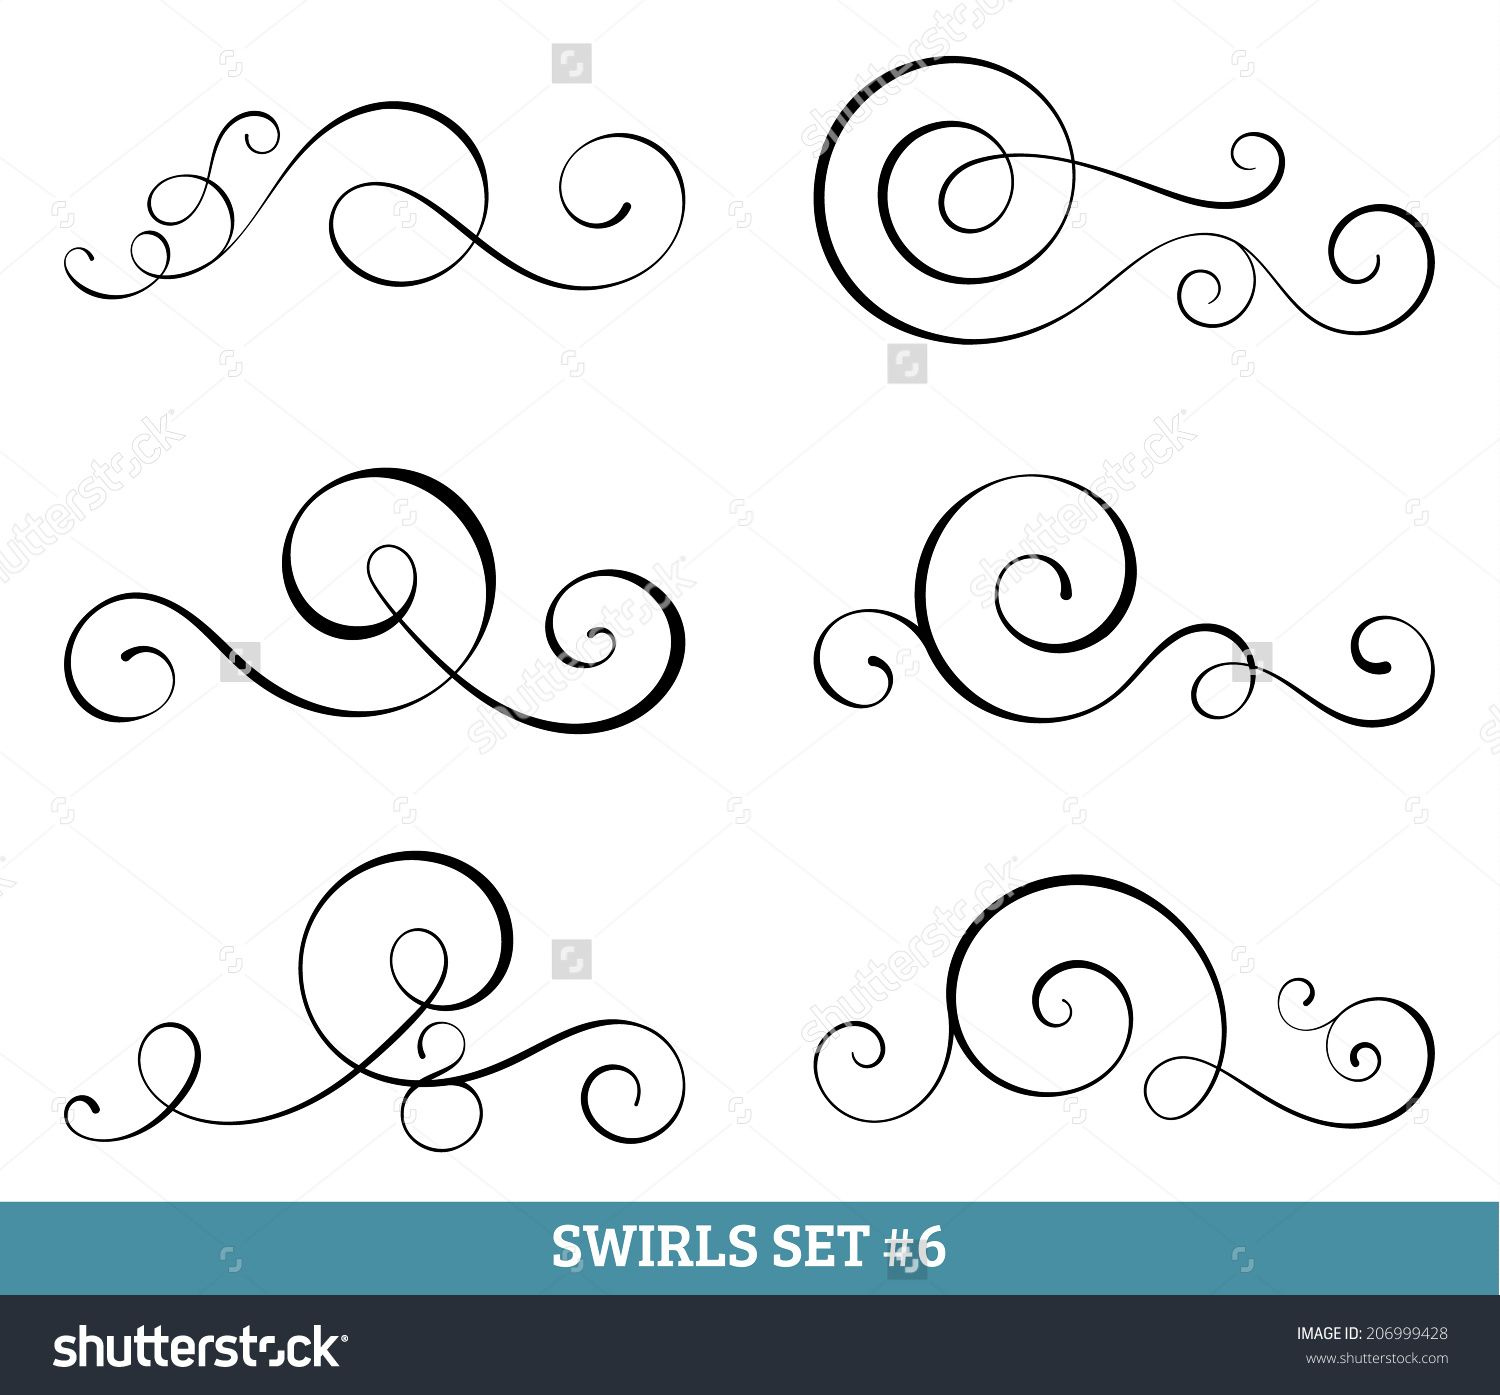 Set Of Six Vector Flourish Swirls Simple Black Contours On White